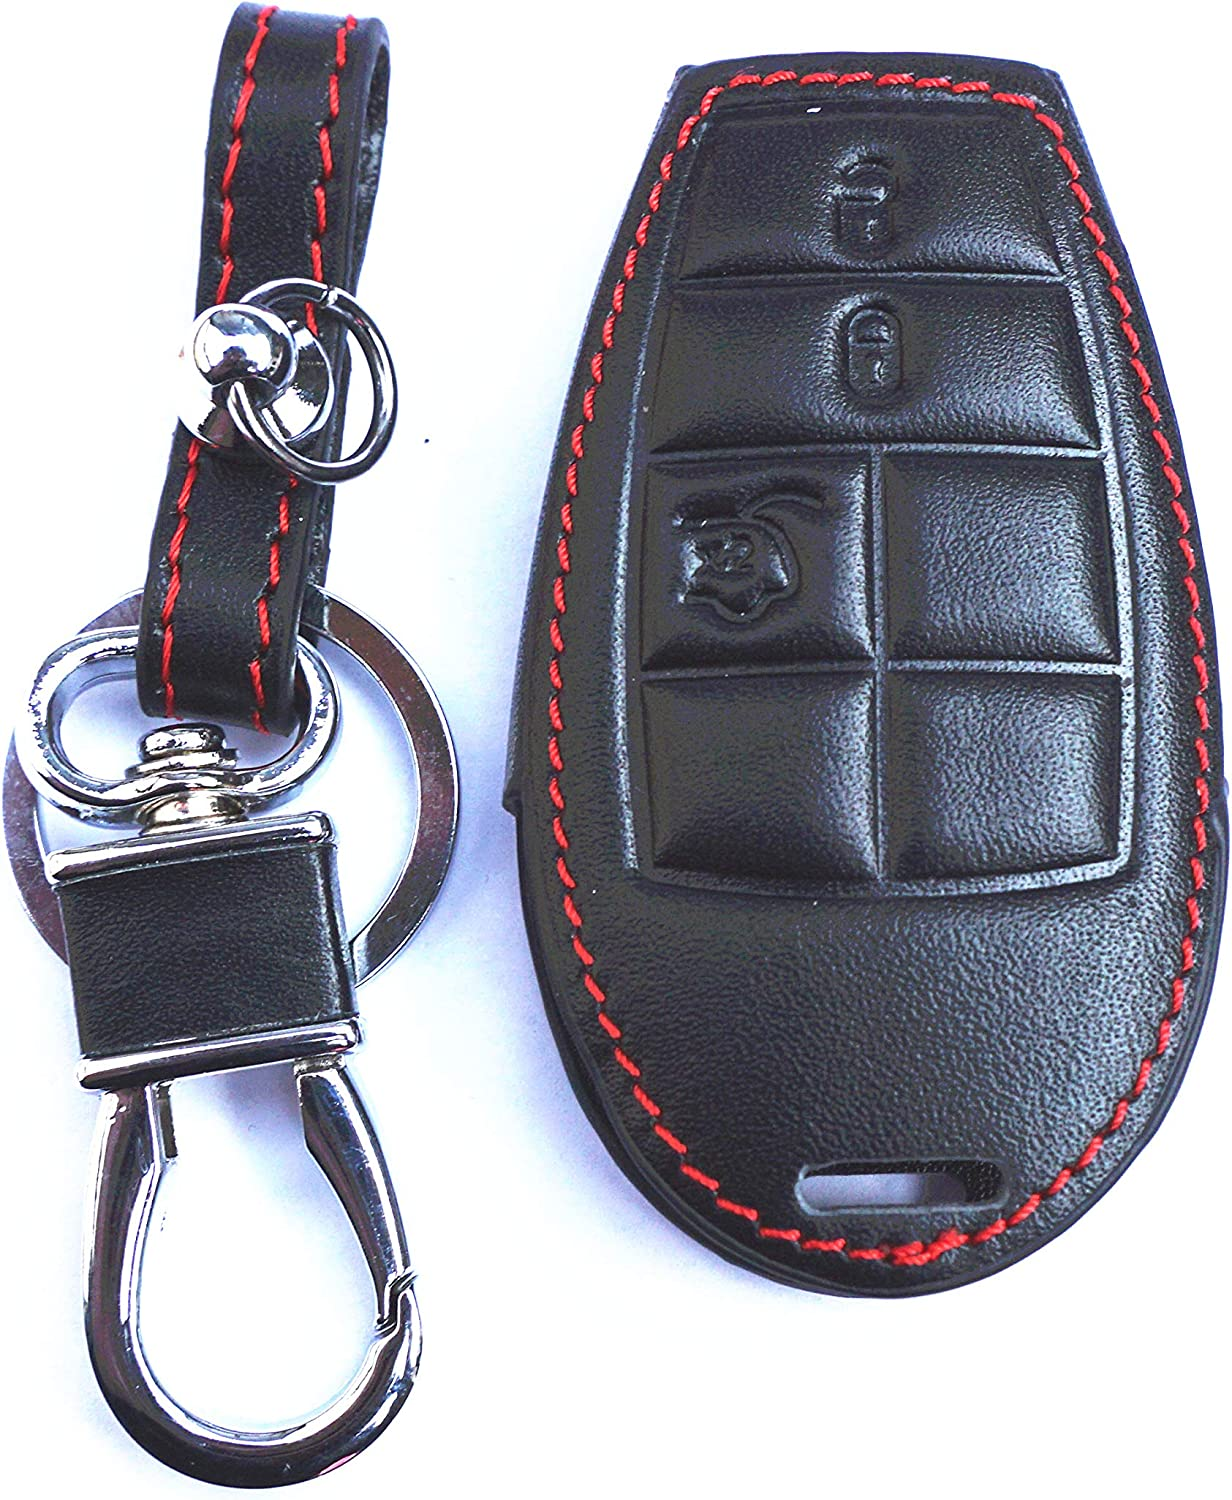 New Black Genuine Leather Remote Smart Key Chain Holder Cover Case Fob For Dodge Challenger Charger Magnum Durango Grand Caravan Ram 1500 2500 3500 4500 Jeep Commander Grand Cherokee Chrysler 300